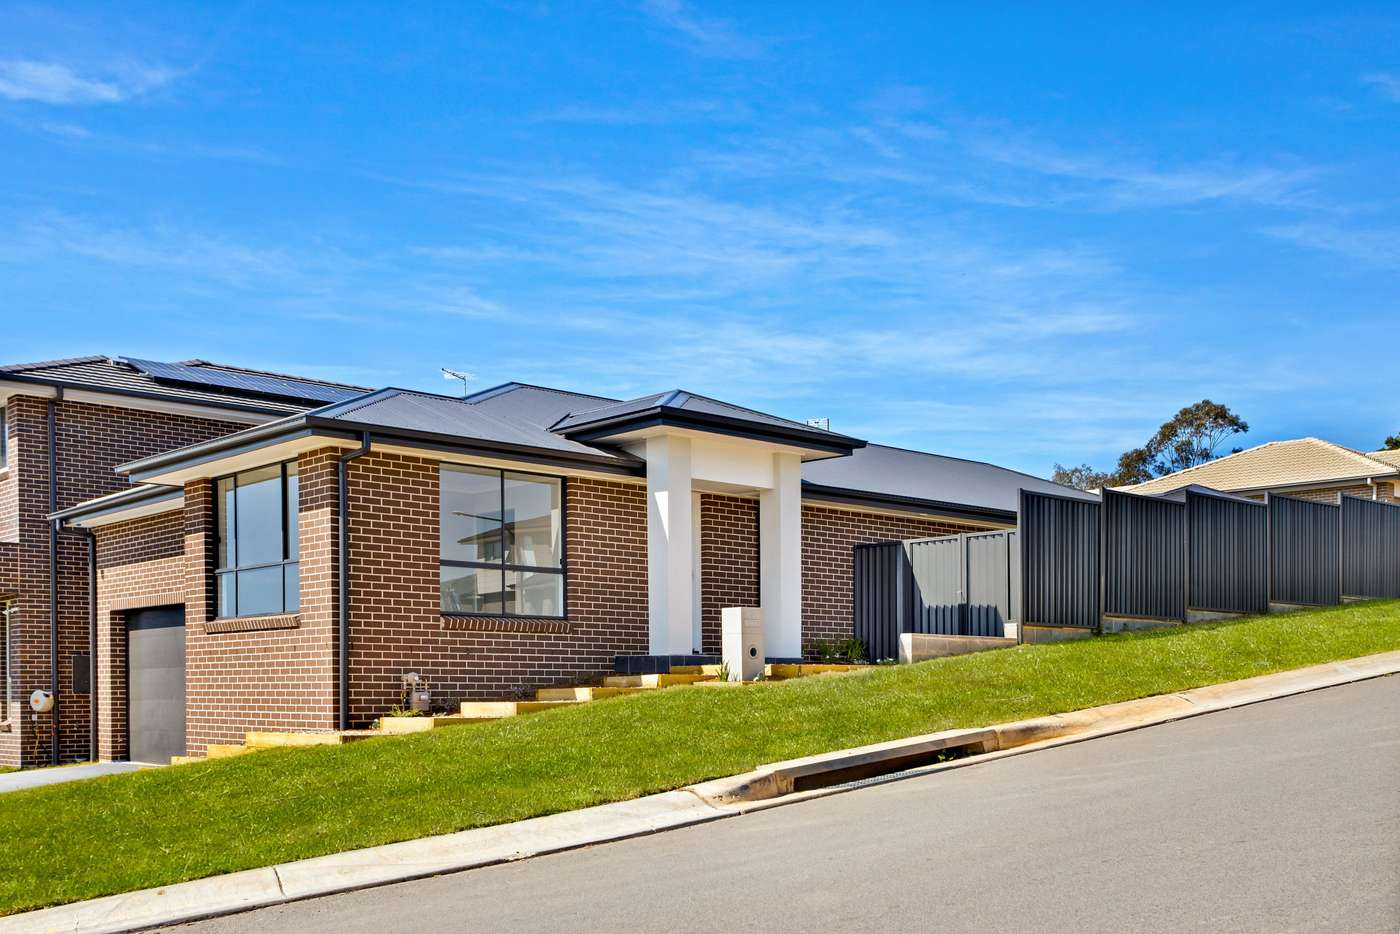 Main view of Homely house listing, 2 Yusen Street, Riverstone NSW 2765